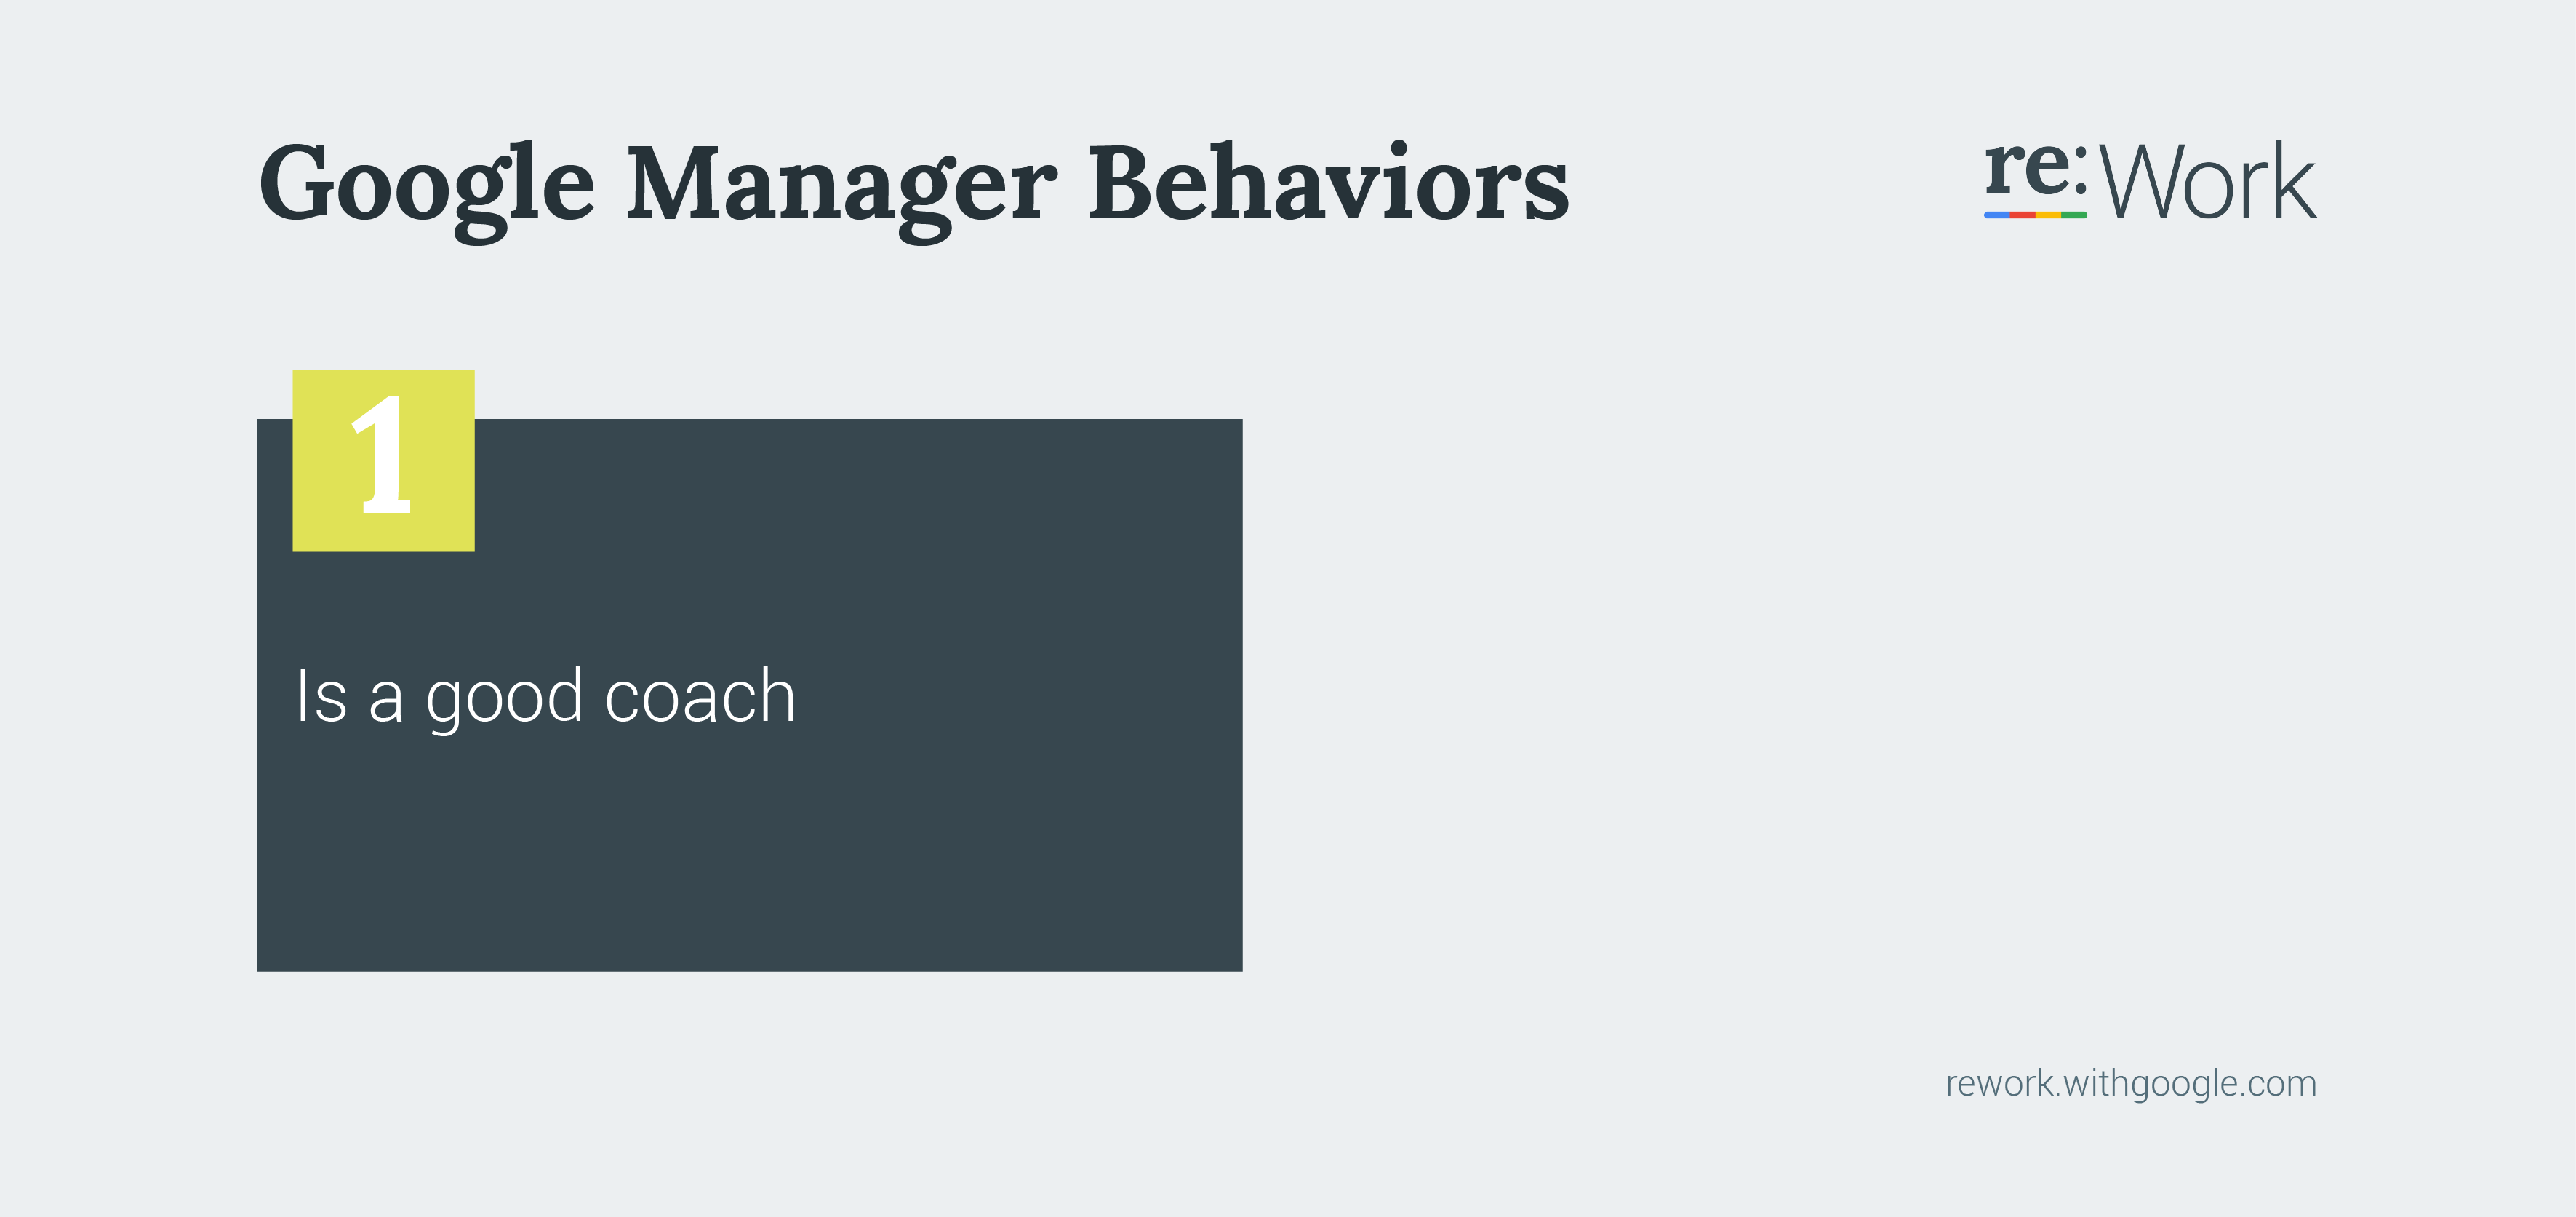 Google Manager Behaviors 1 Is a good coach.